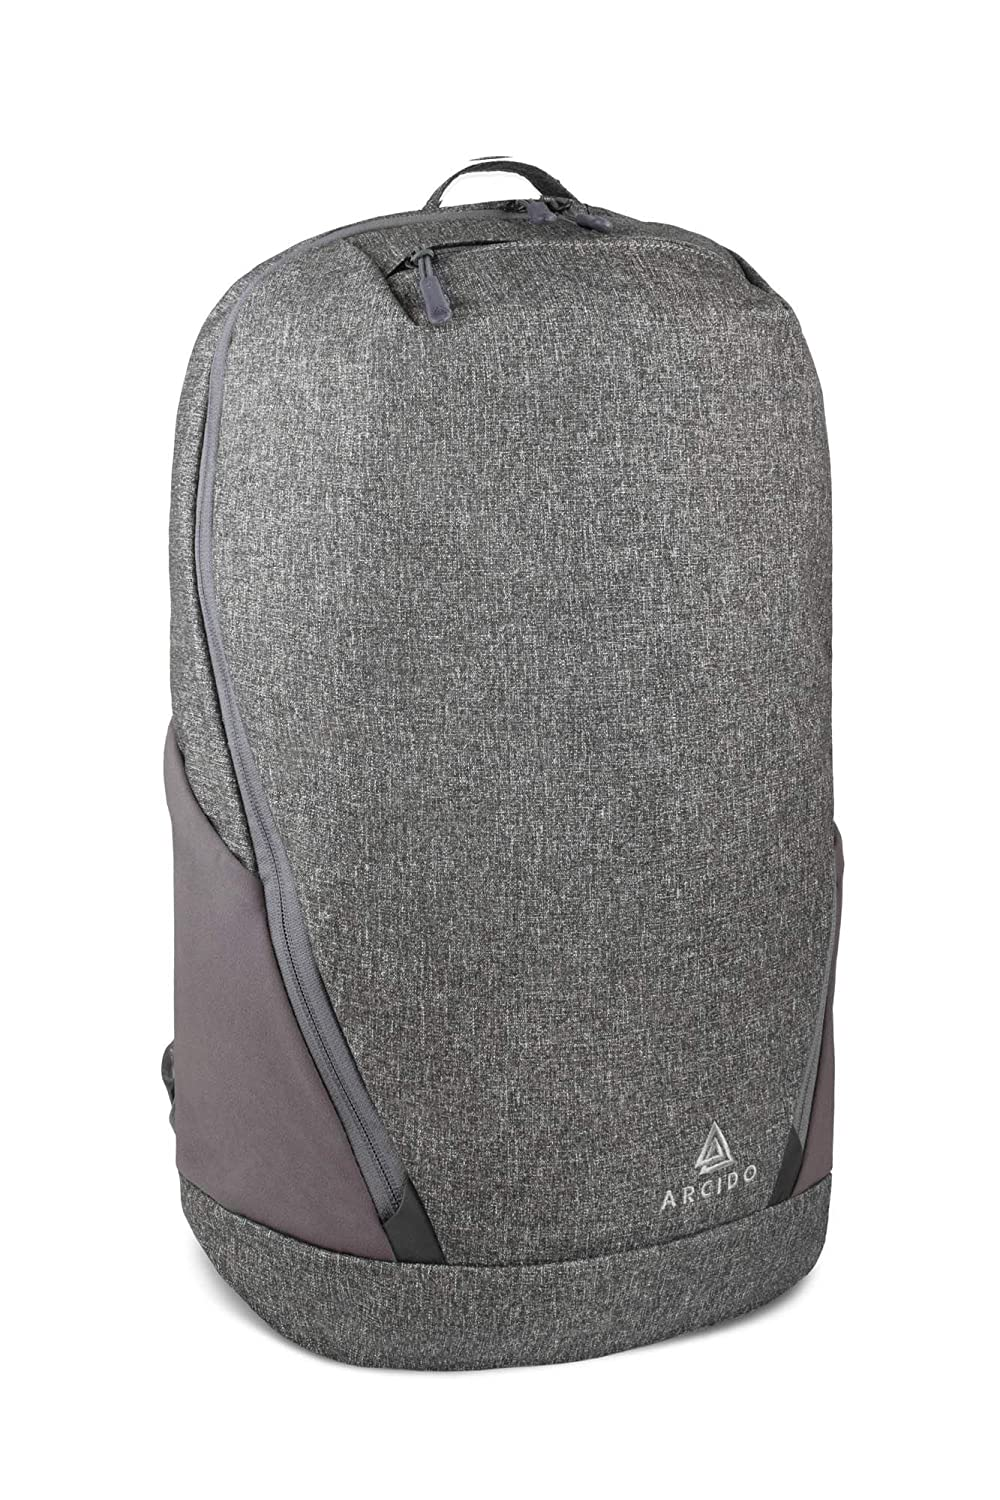 ee7cdf5242e6 Arcido Vaga Daypack   50 x 30 x 20cm Backpack including laptop harness   Amazon.co.uk  Computers   Accessories